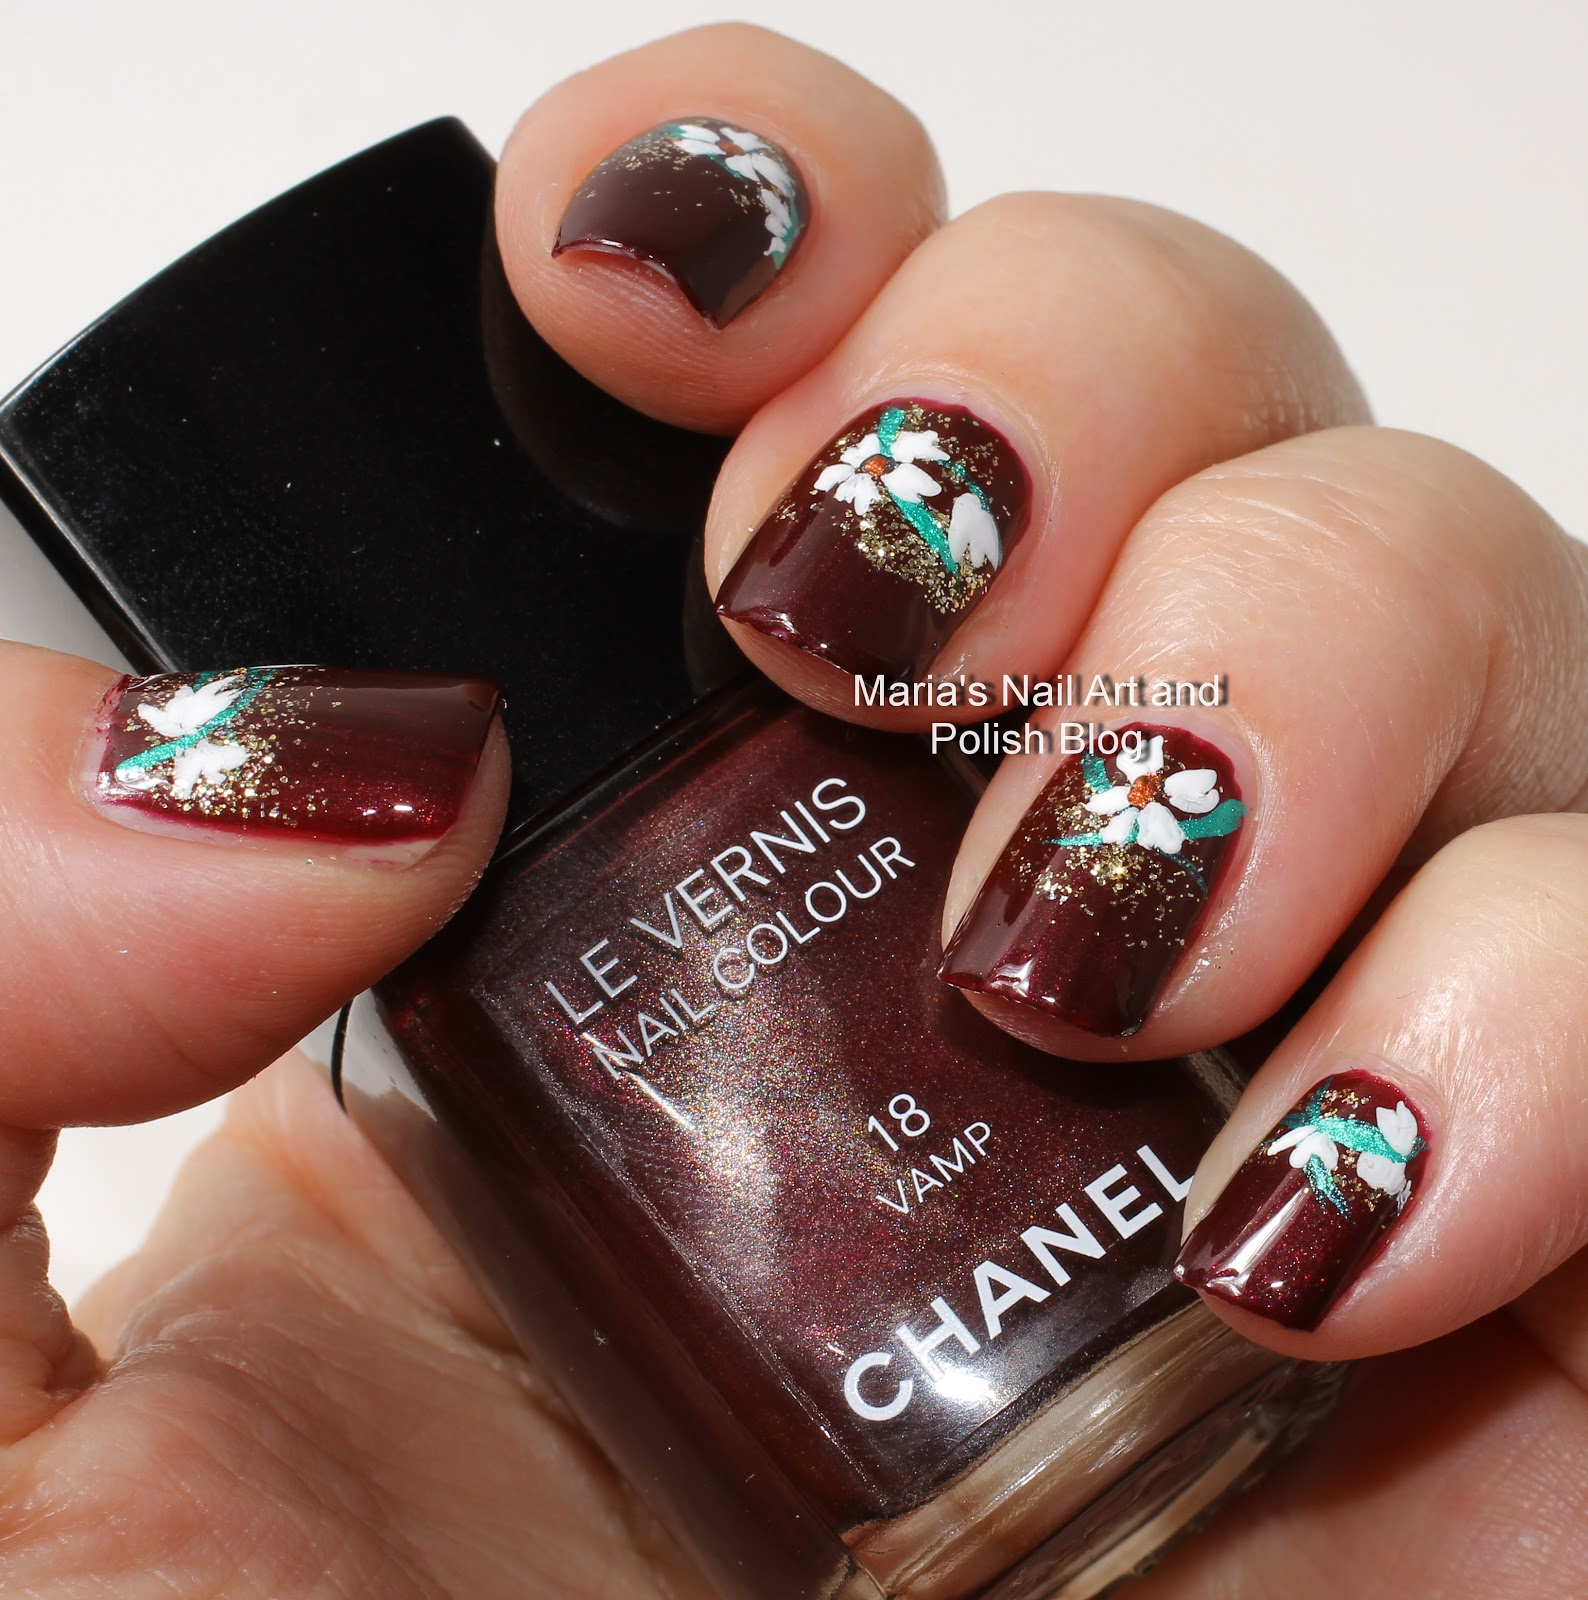 Marias nail art and polish blog flowers for a vamp nail art flowers for a vamp nail art prinsesfo Gallery